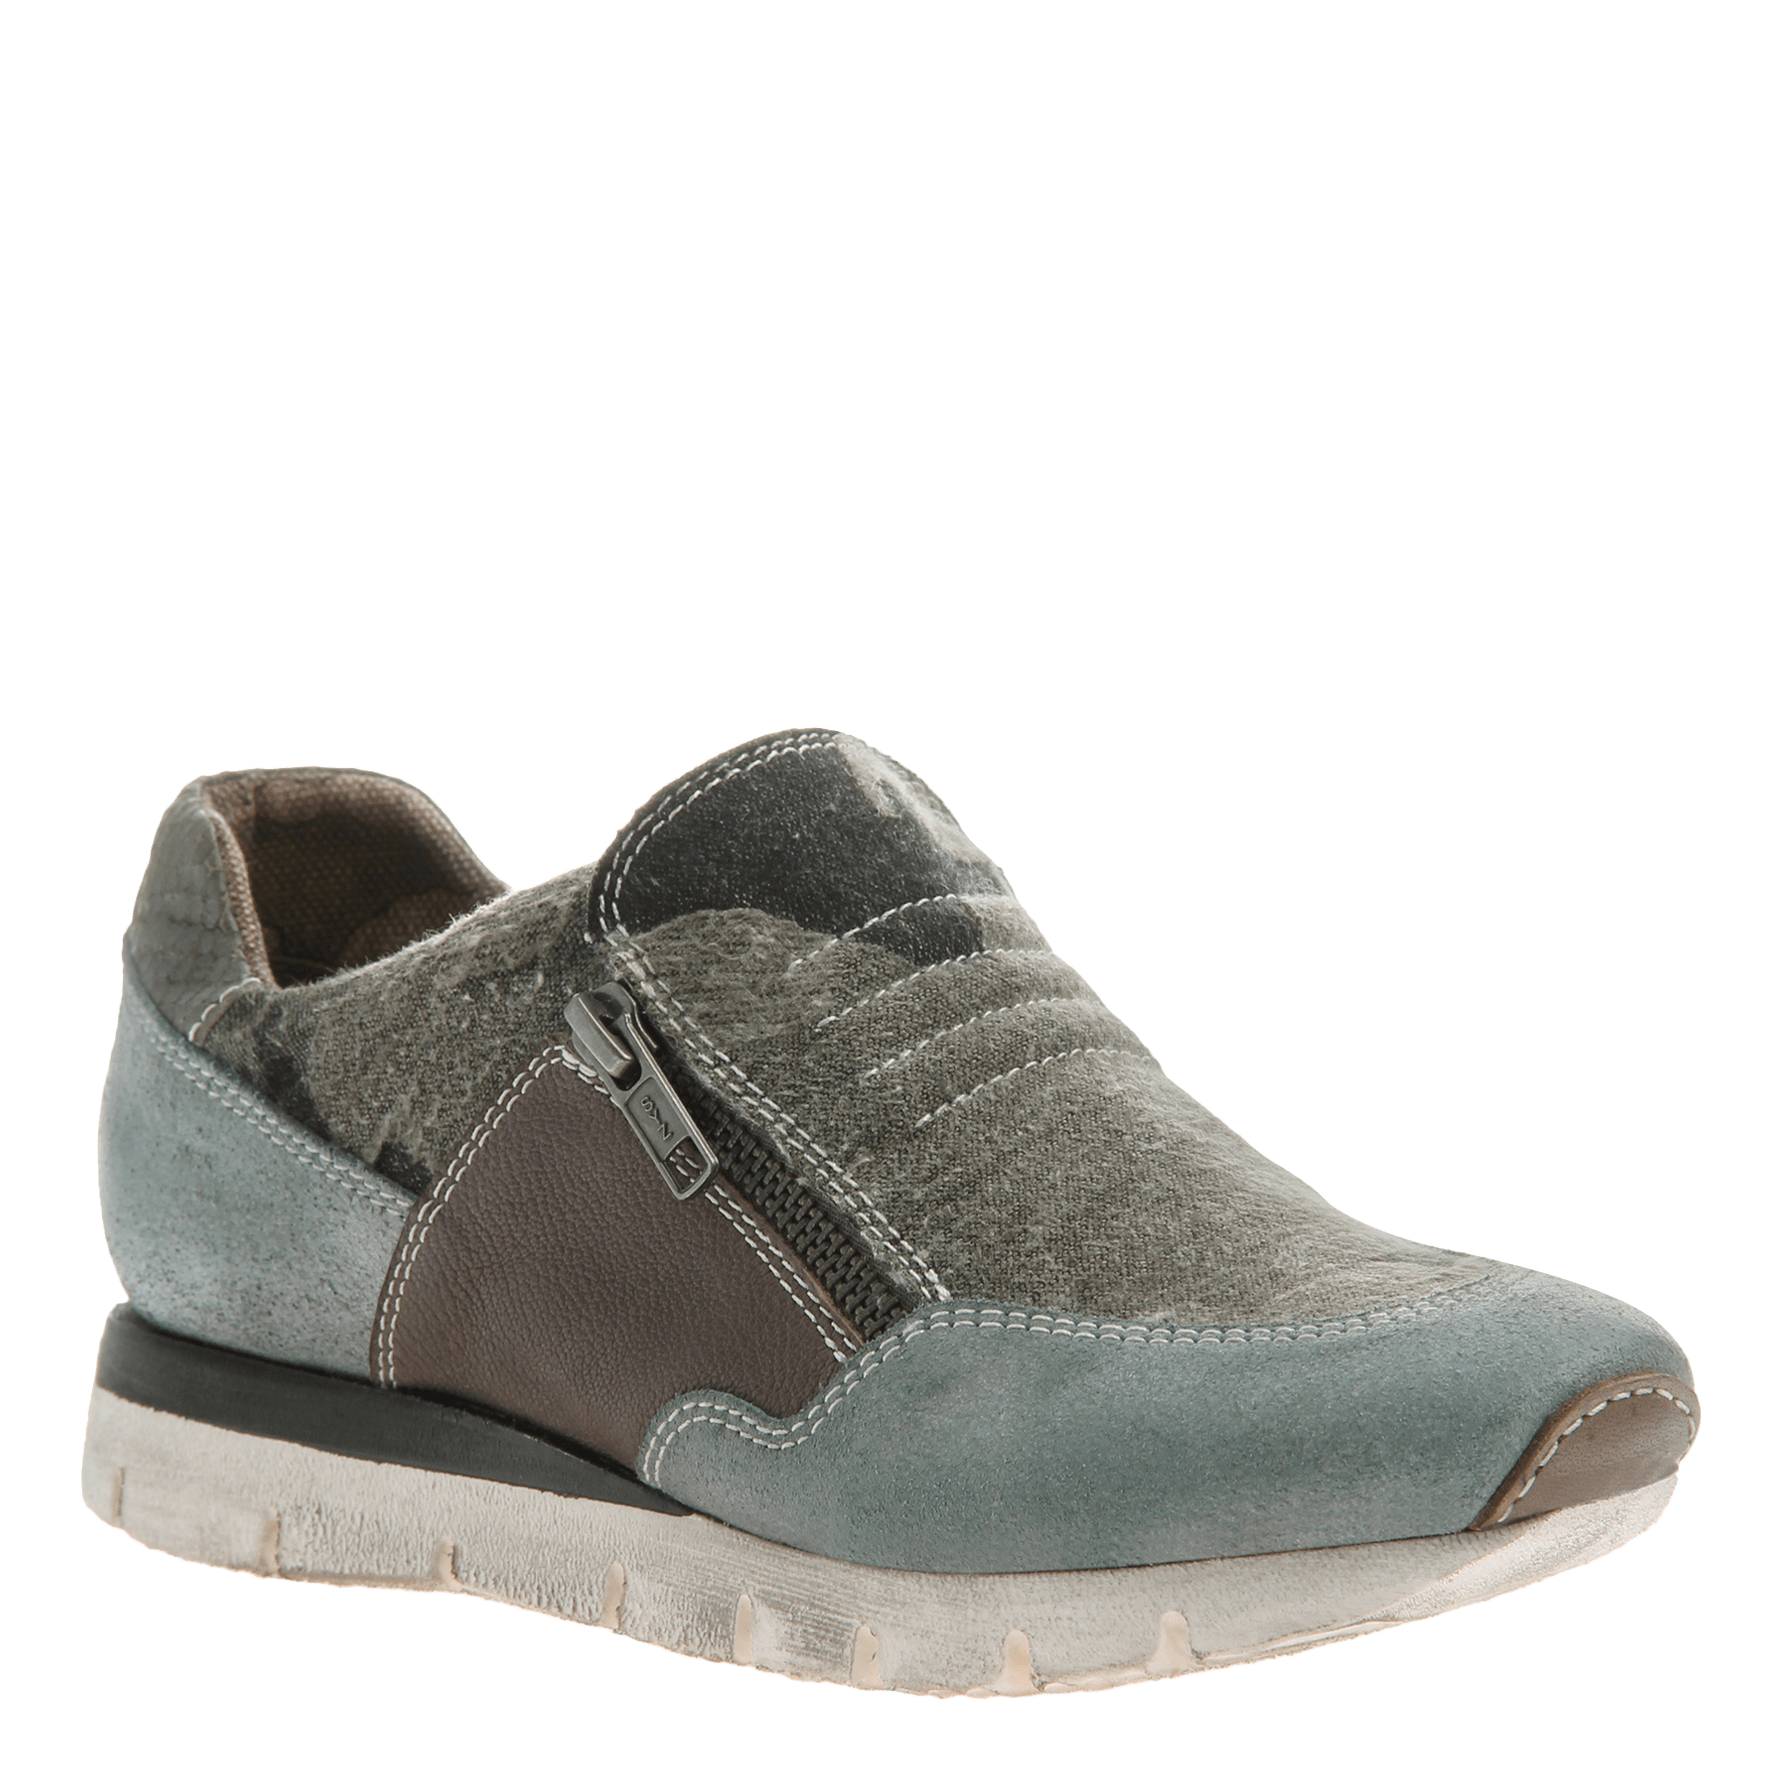 Sewell women's double zip up sneaker in blue grey